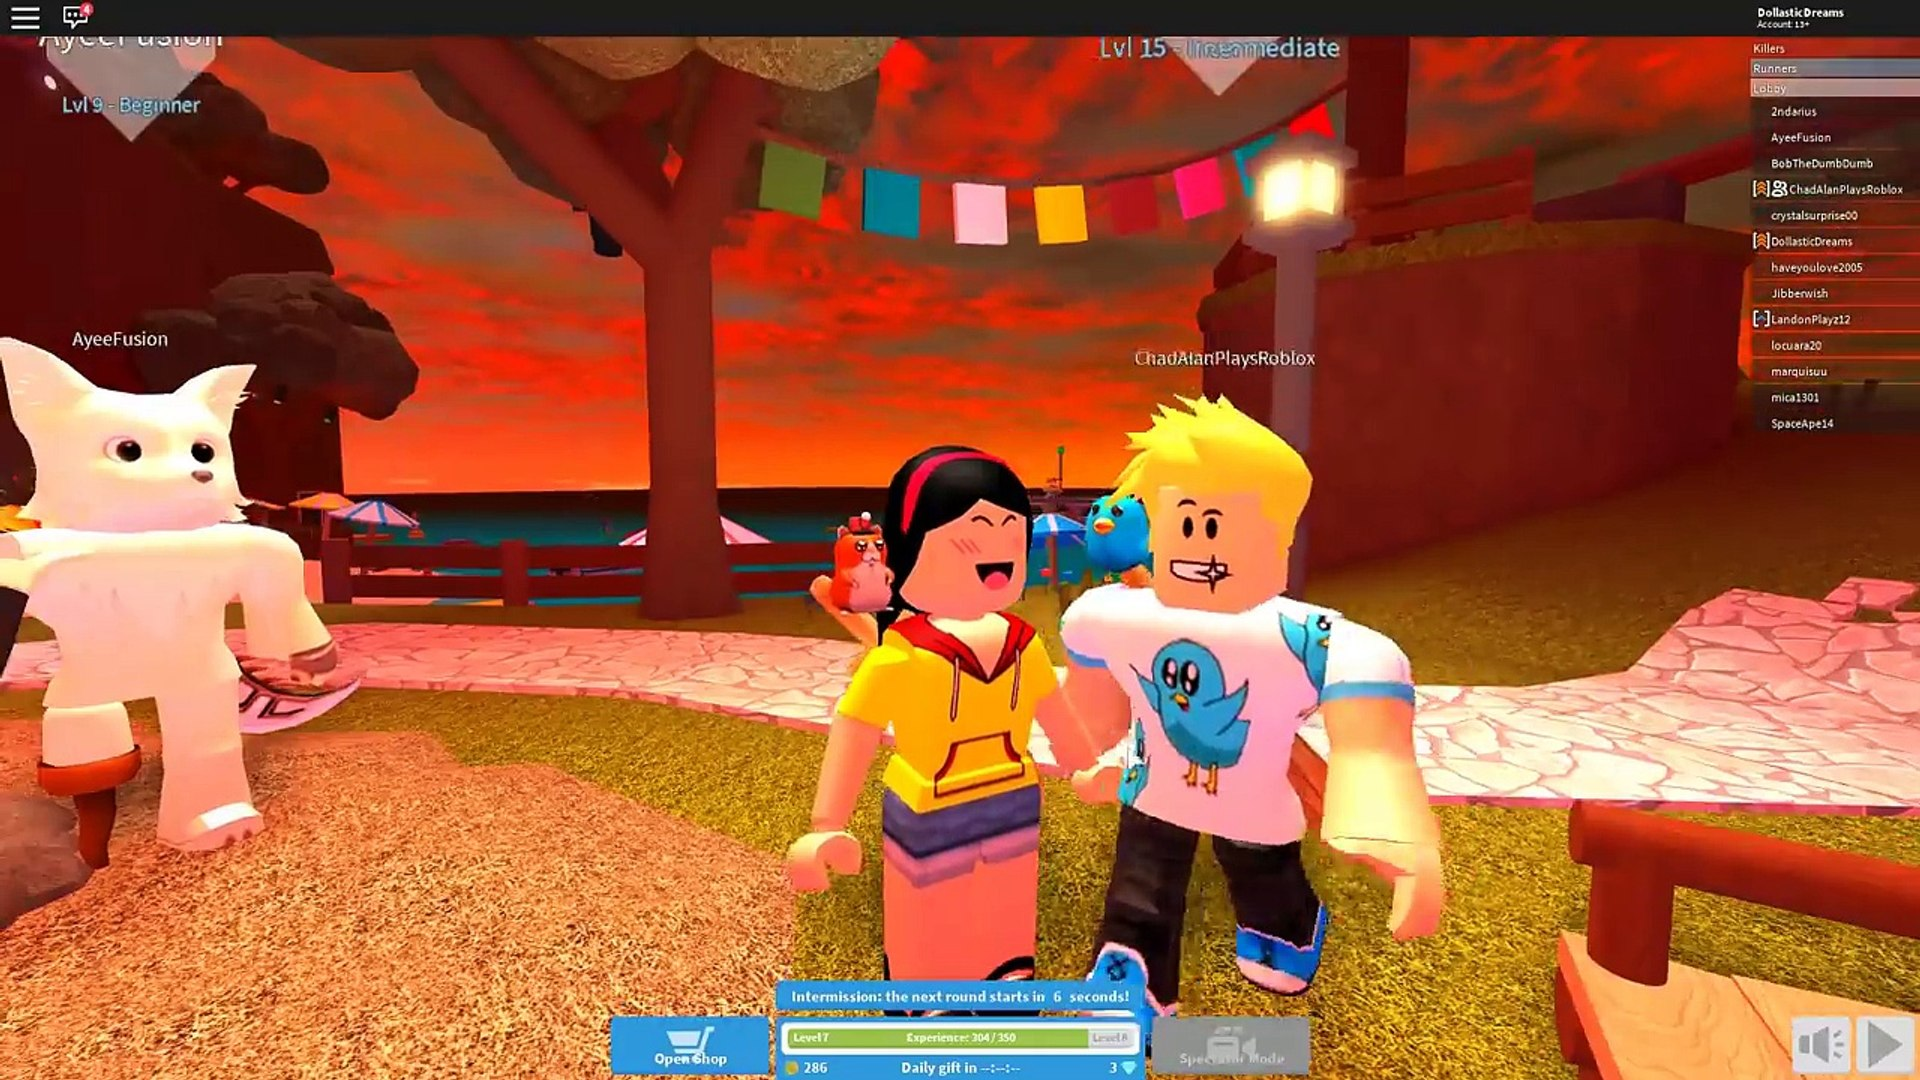 Roblox Videos From Gamer Chad Ninja Pick Up Lines Roblox Death Run With Gamer Chad Dollastic Plays Dailymotion Video